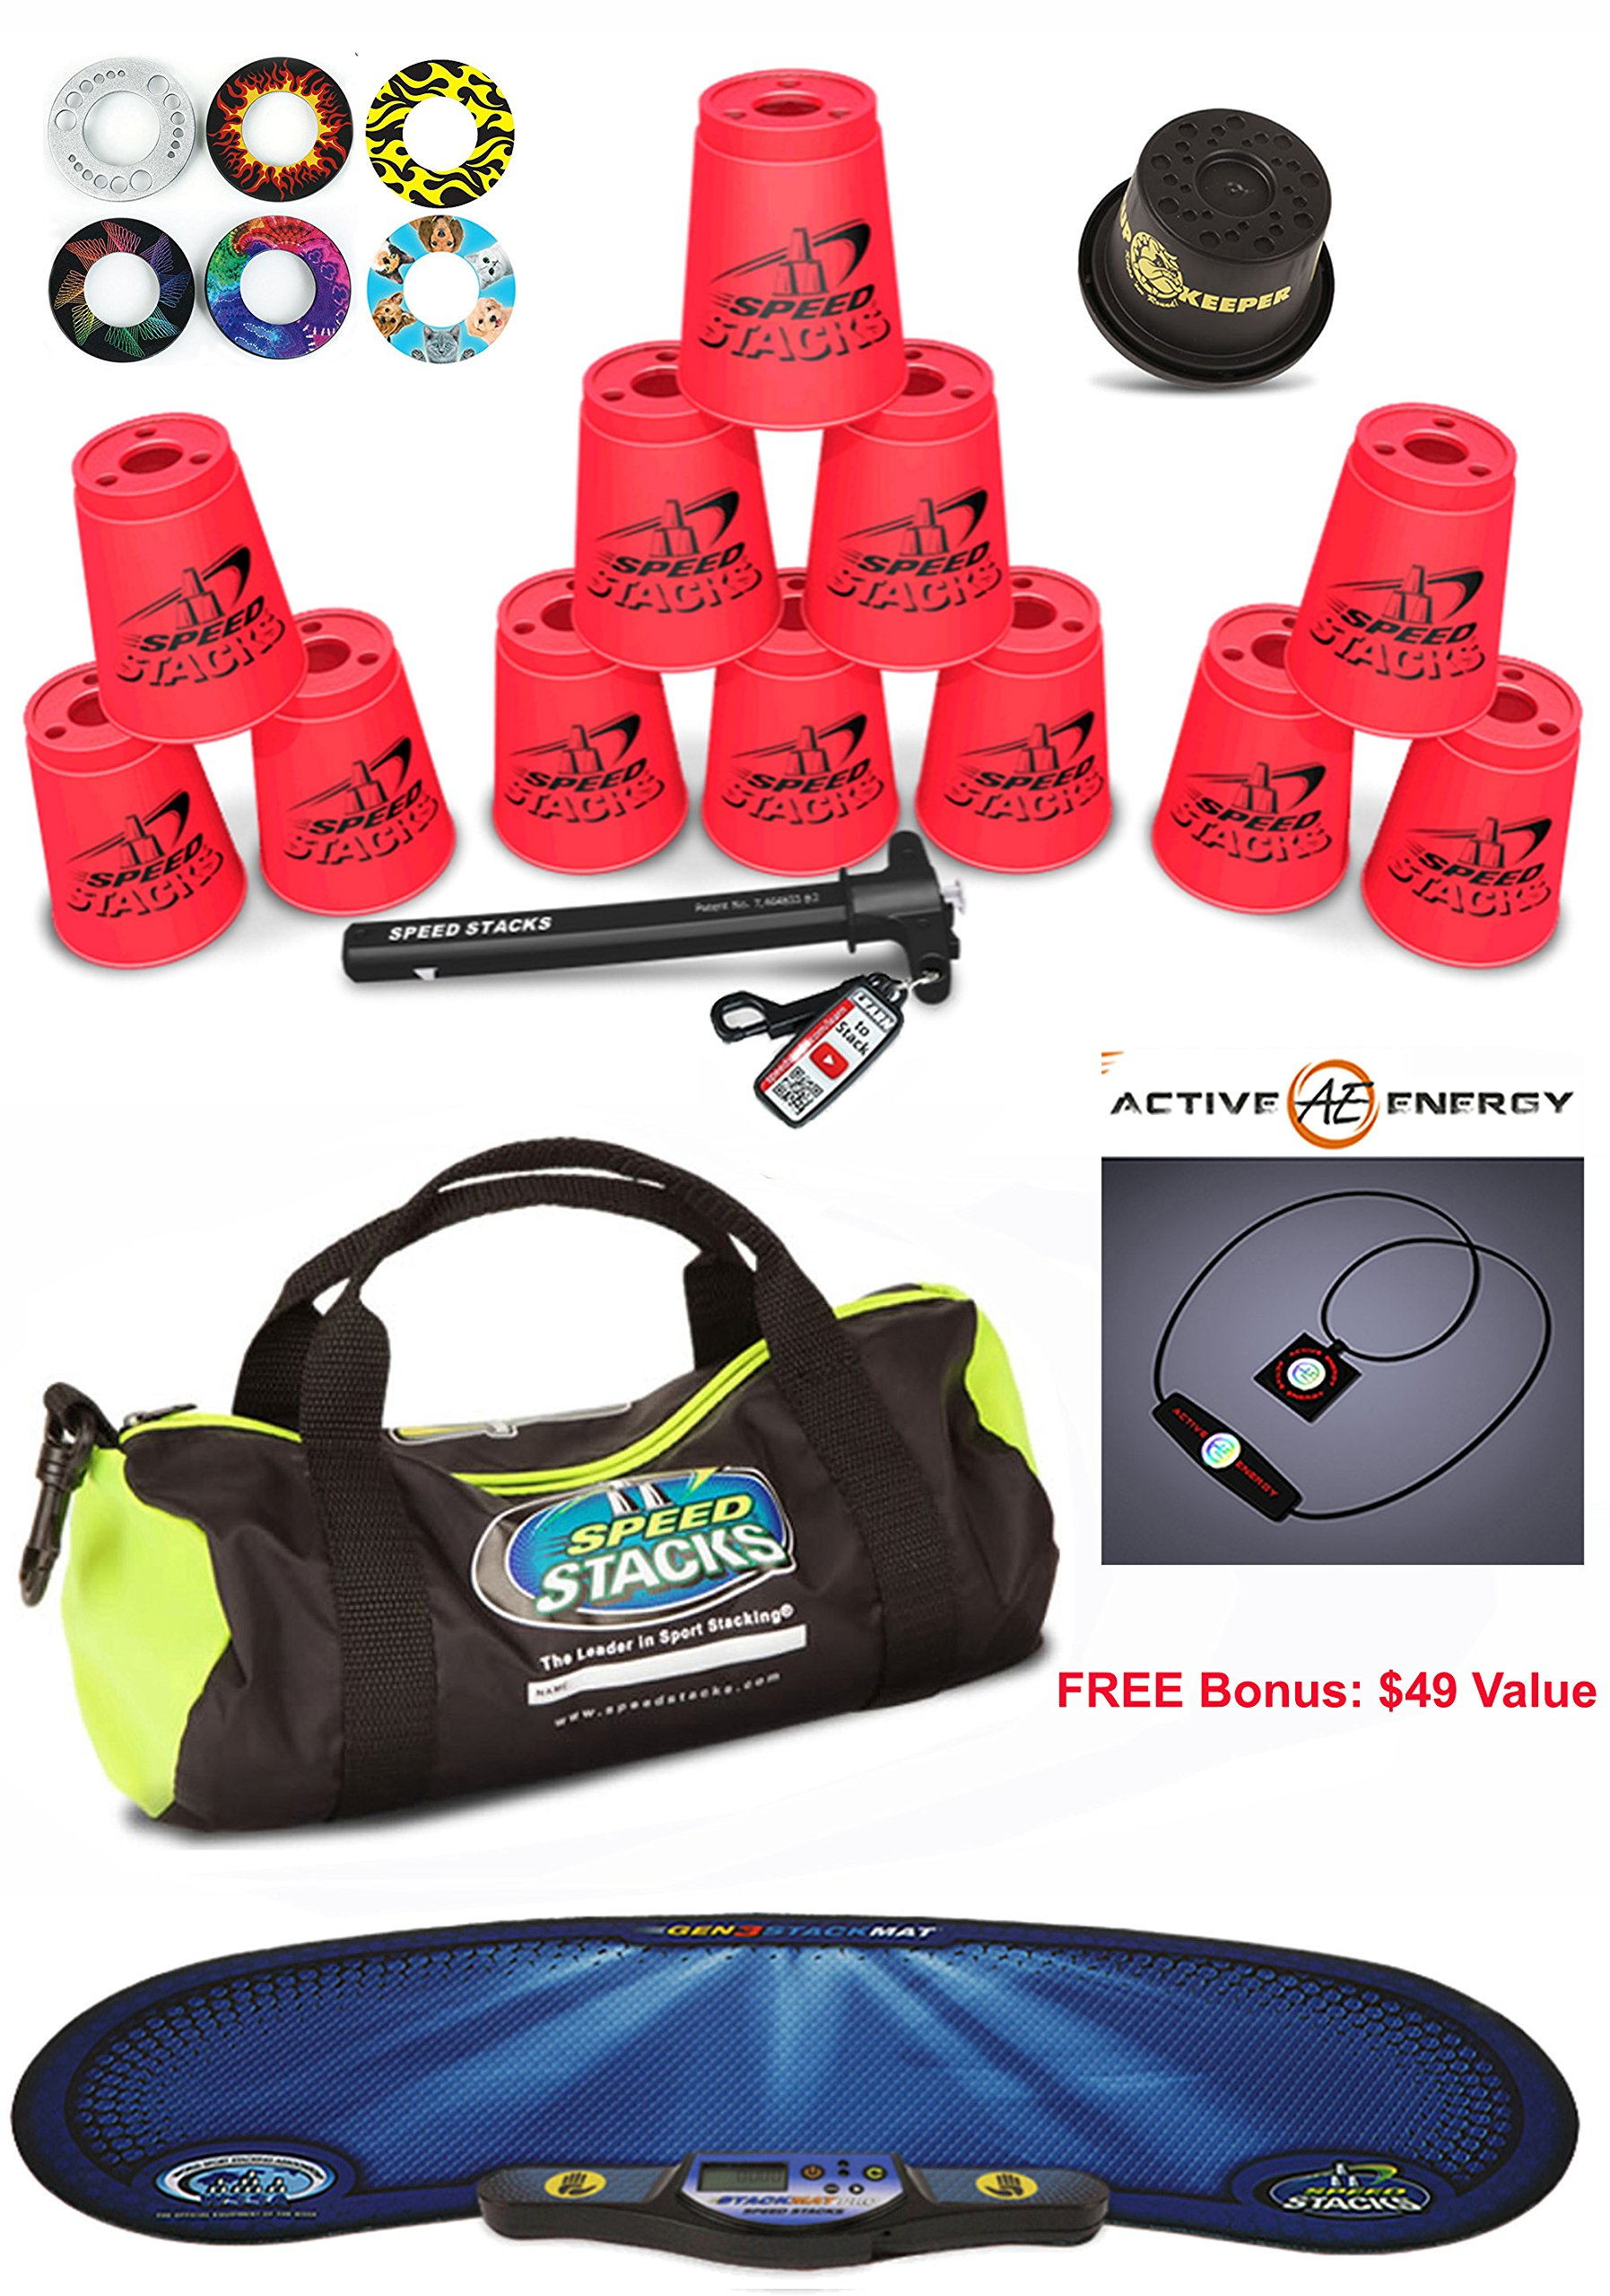 Speed Stacks Custom Combo Set - The Works: 12 NEON PINK Cups, Cup Keeper, Quick Release Stem, Pro Timer, Gen 3 Mat, 6 Snap Tops & Gear Bag by Speed Stacks